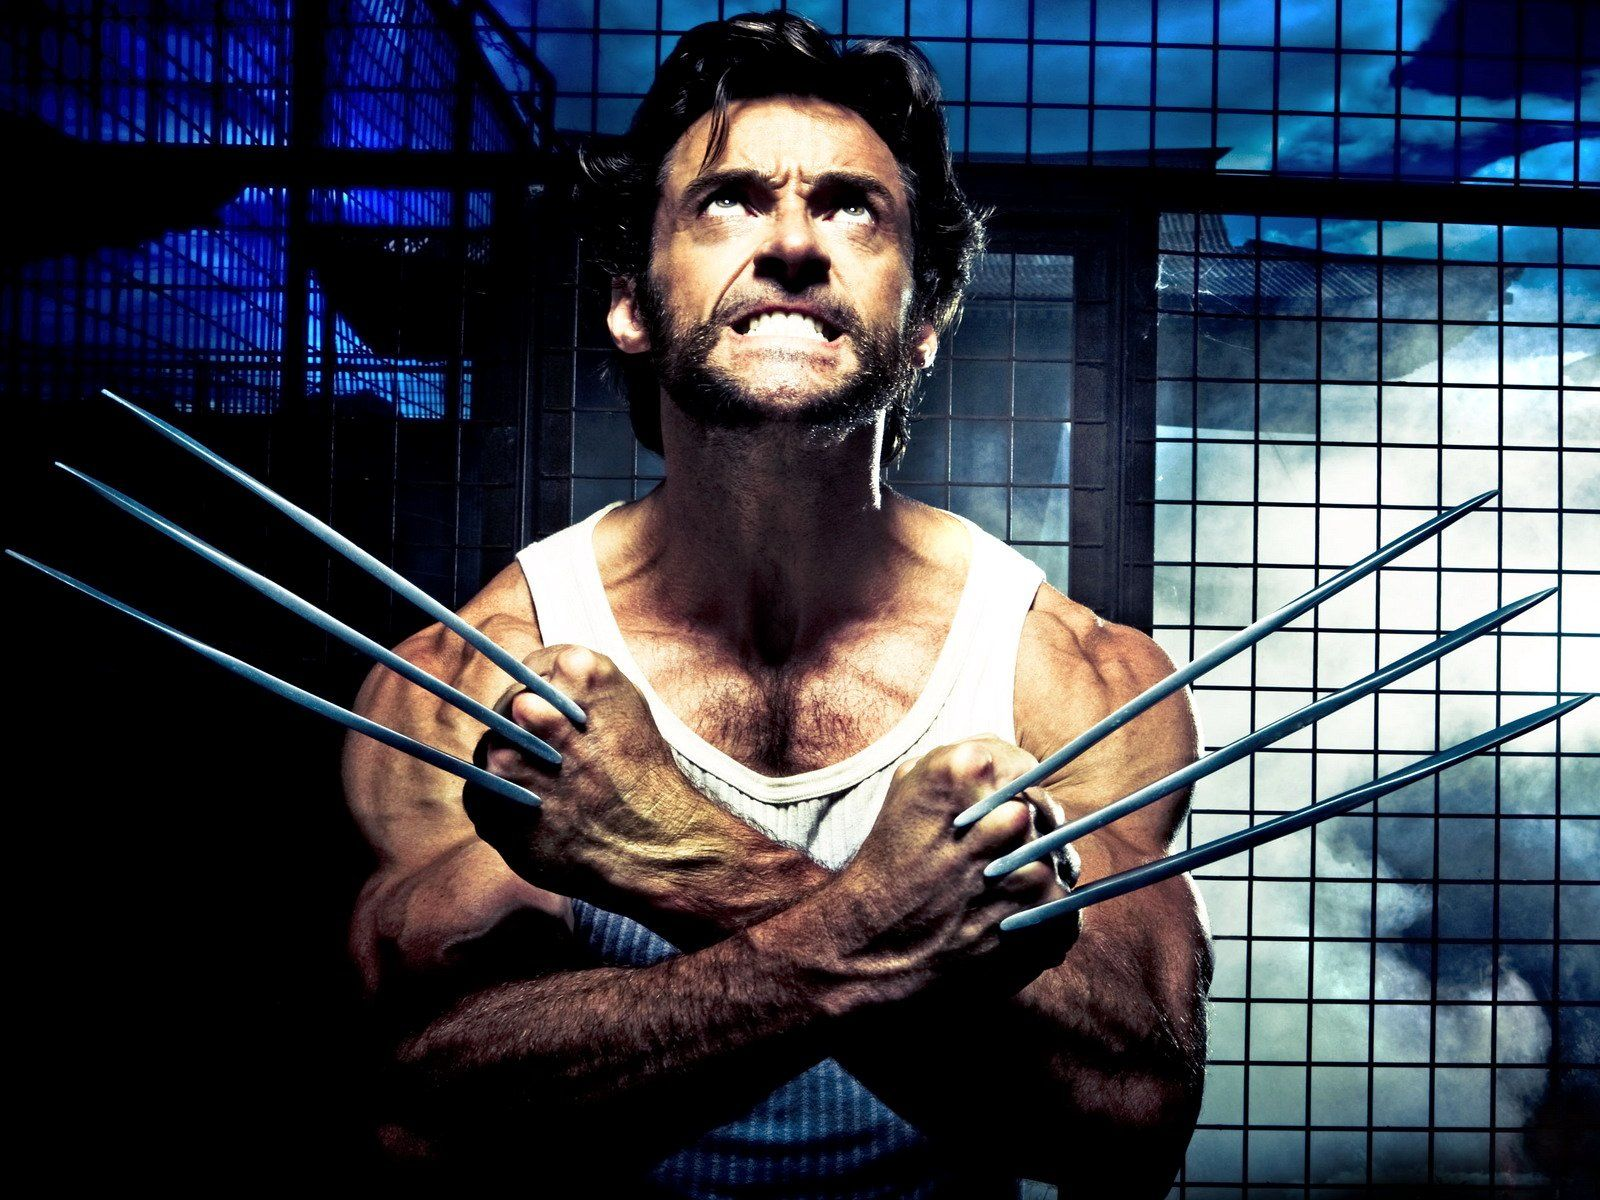 X Men Origins Wolverine Trailer Wolverine Hugh Jackman Wolverine Movie X Men